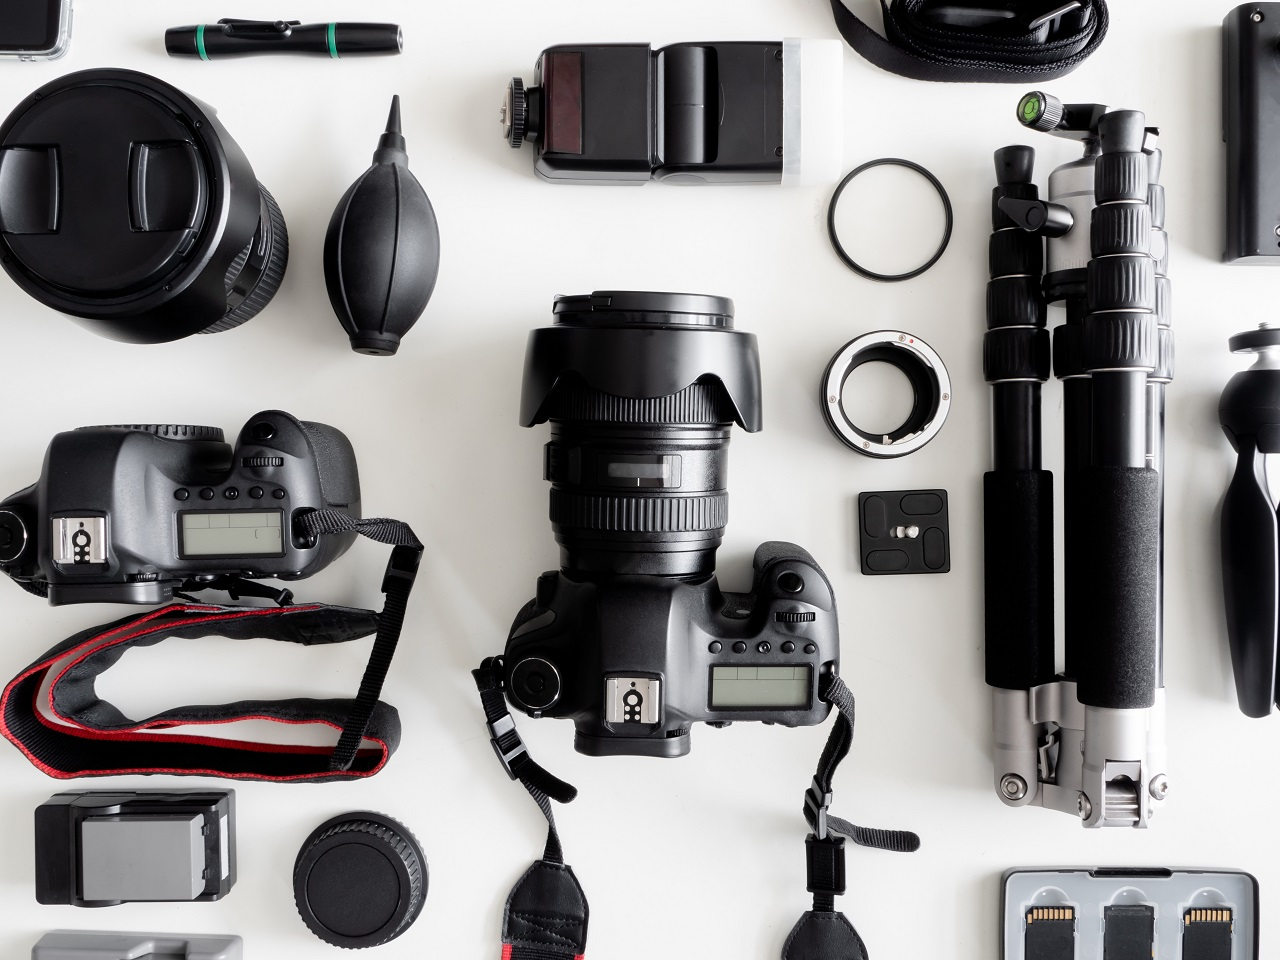 Camera gear on a table